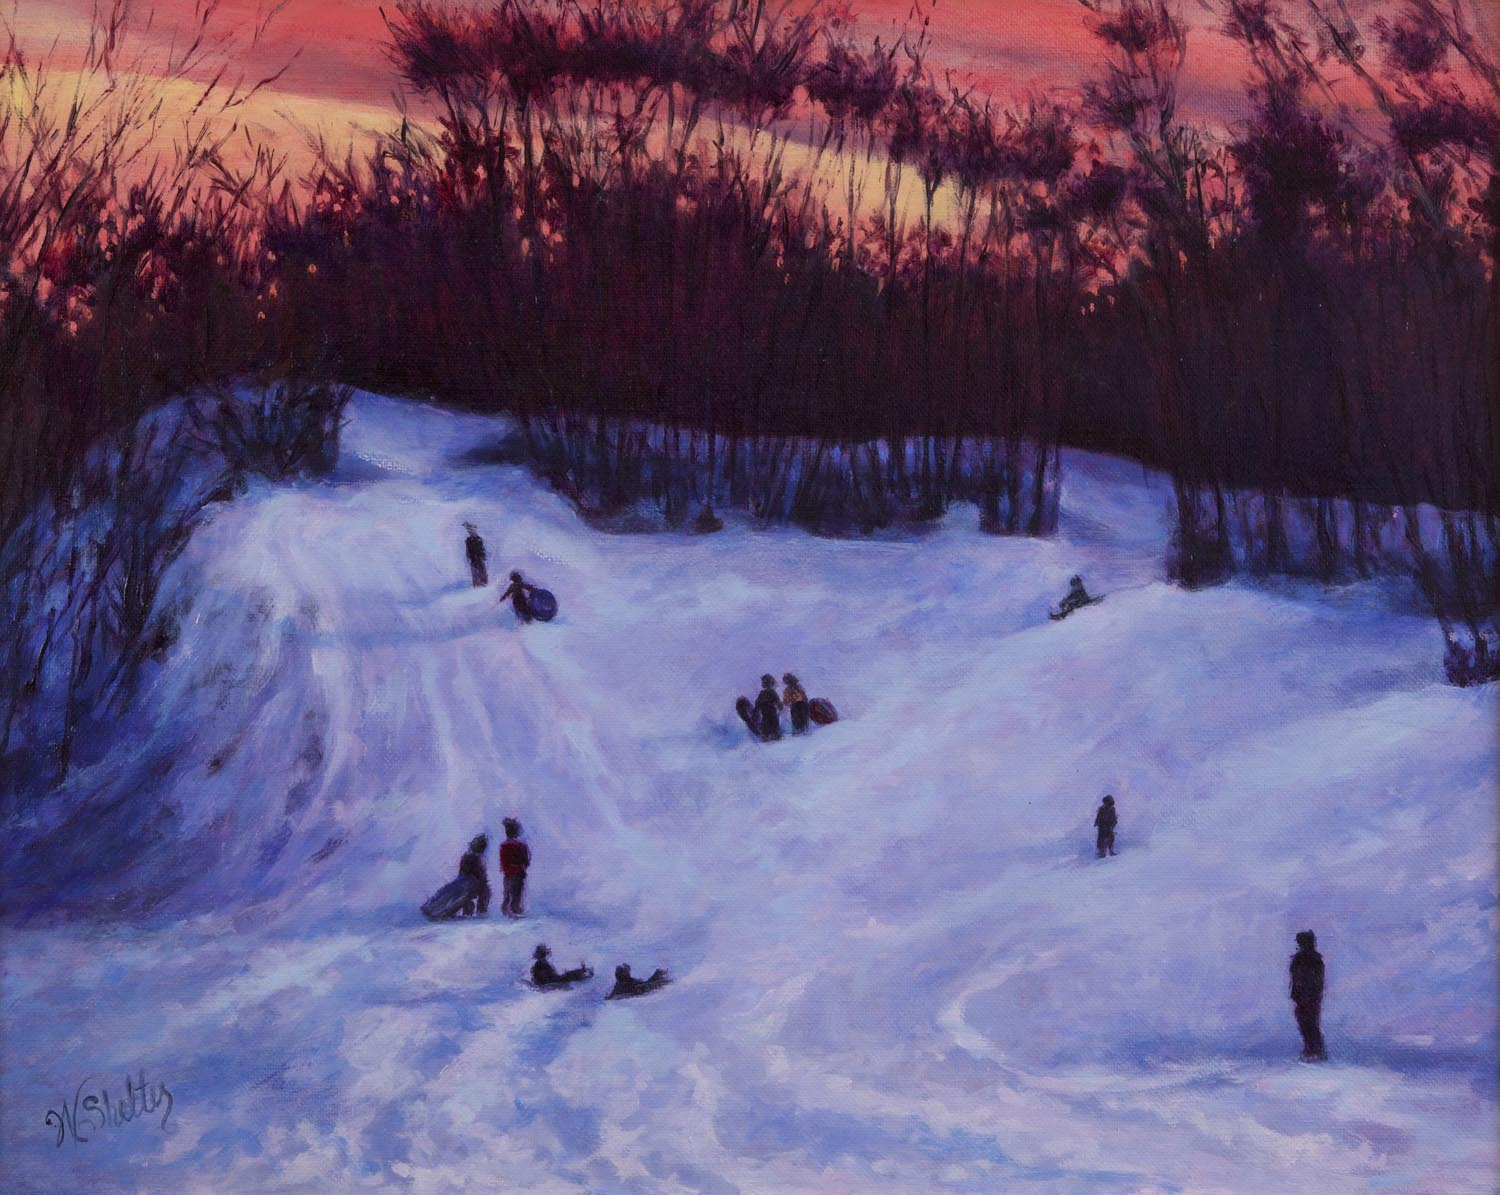 68 - Dusk at March's Hill